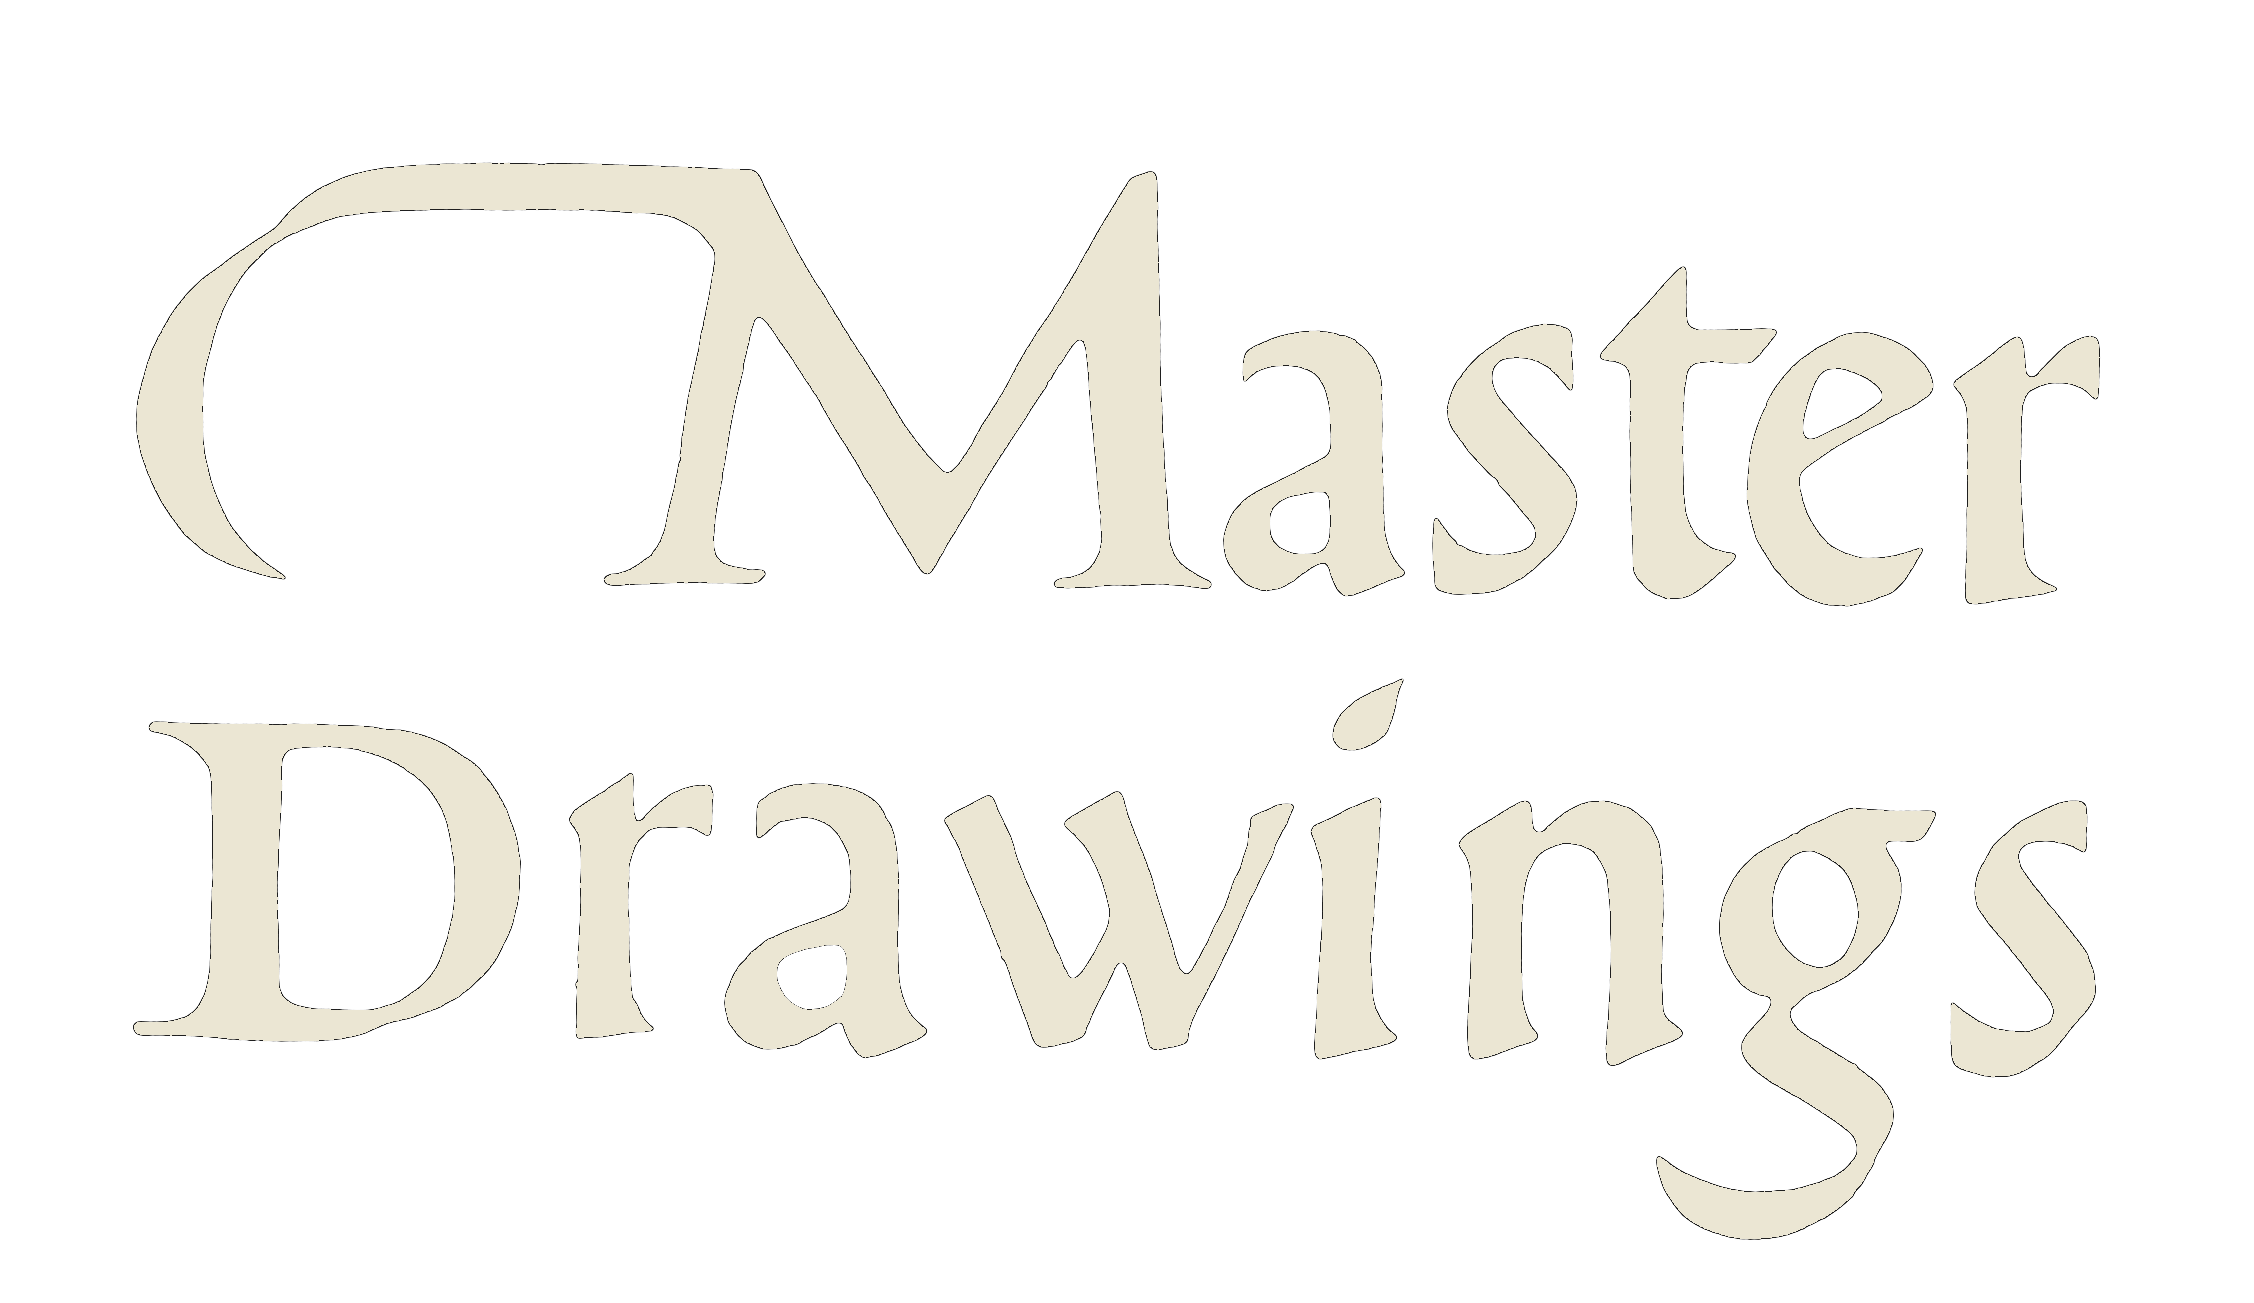 Drawings a quarterly published. Drawing master clipart royalty free download